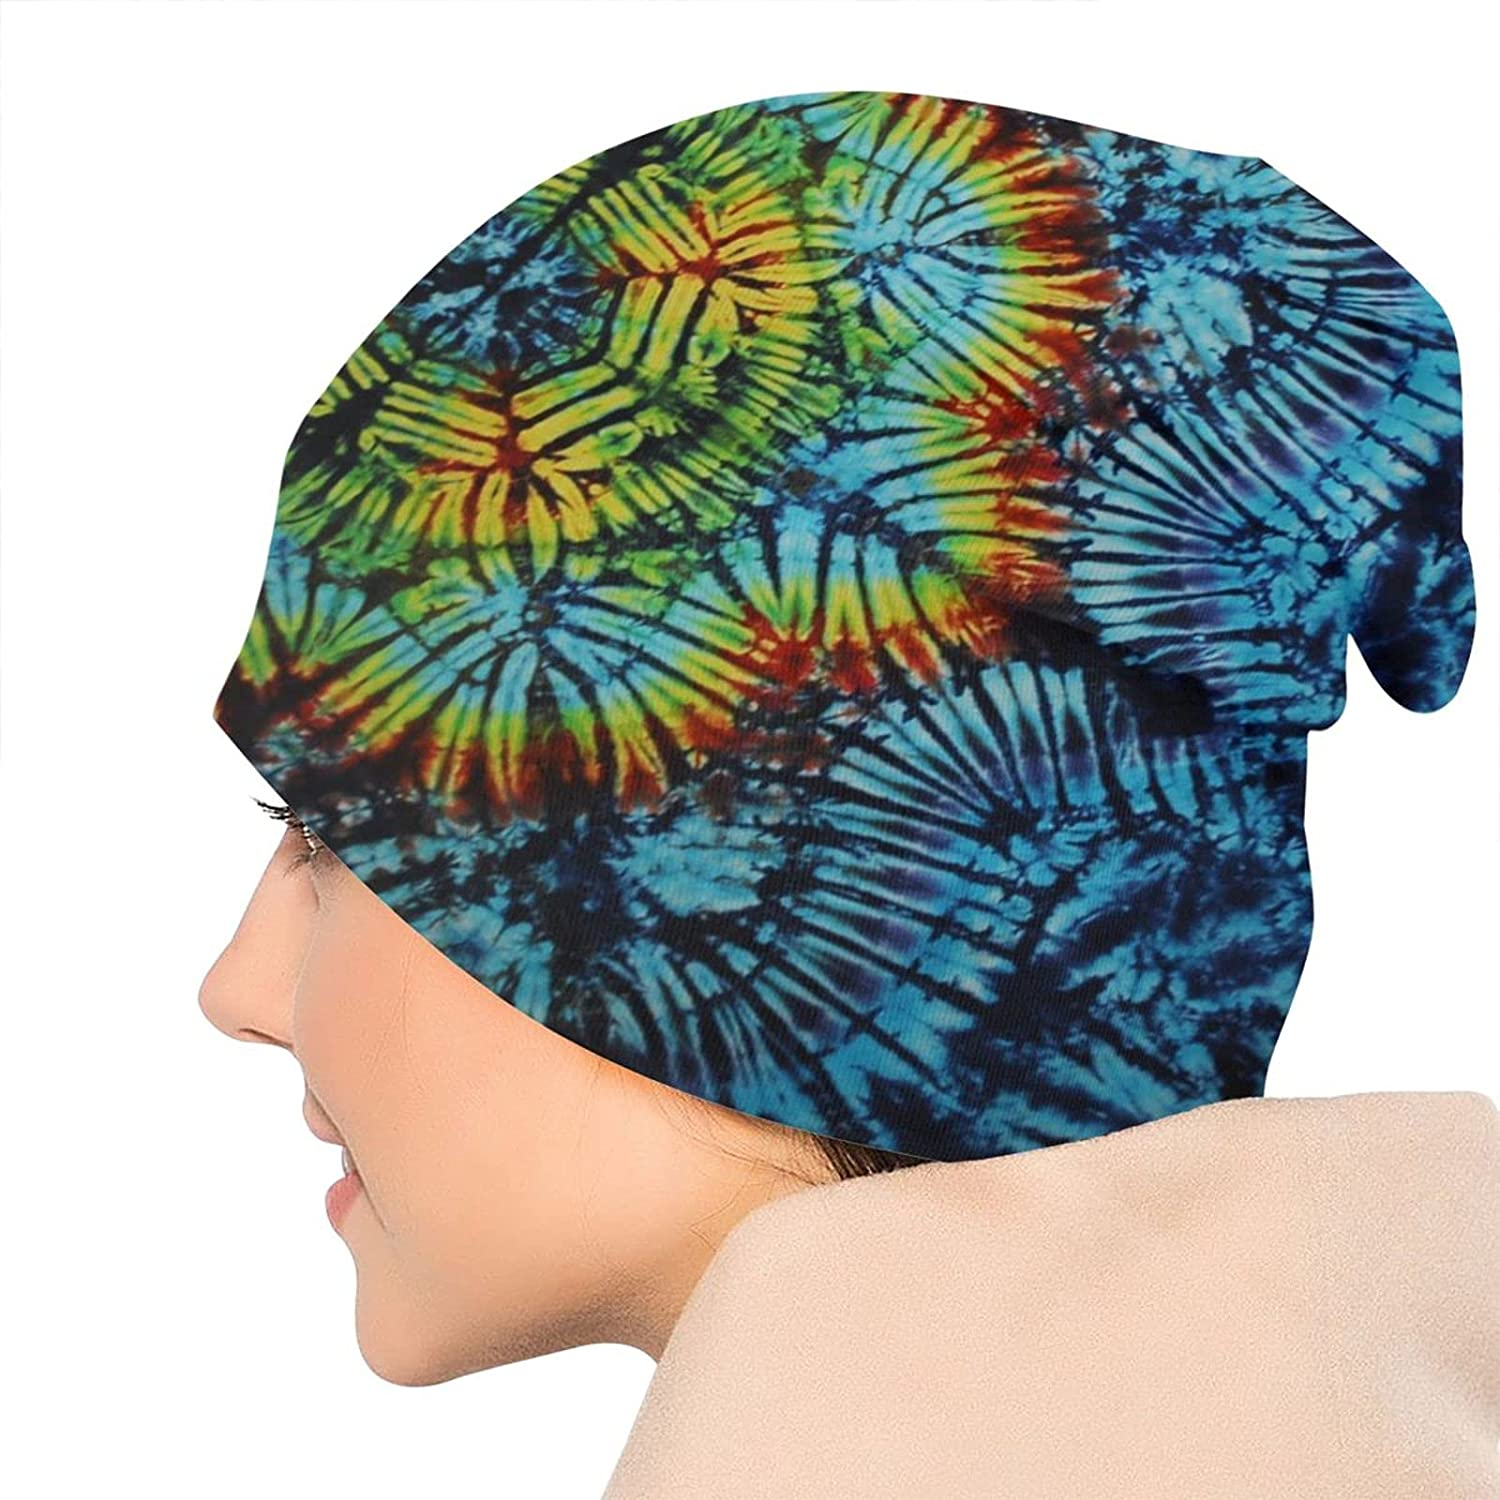 Beanie Hat for Men and Women,Trippy Black Light Tapestry Lightweight Balaclava Cap,Soft Stretch Slouchy, Suit for Outdoor All Seasons